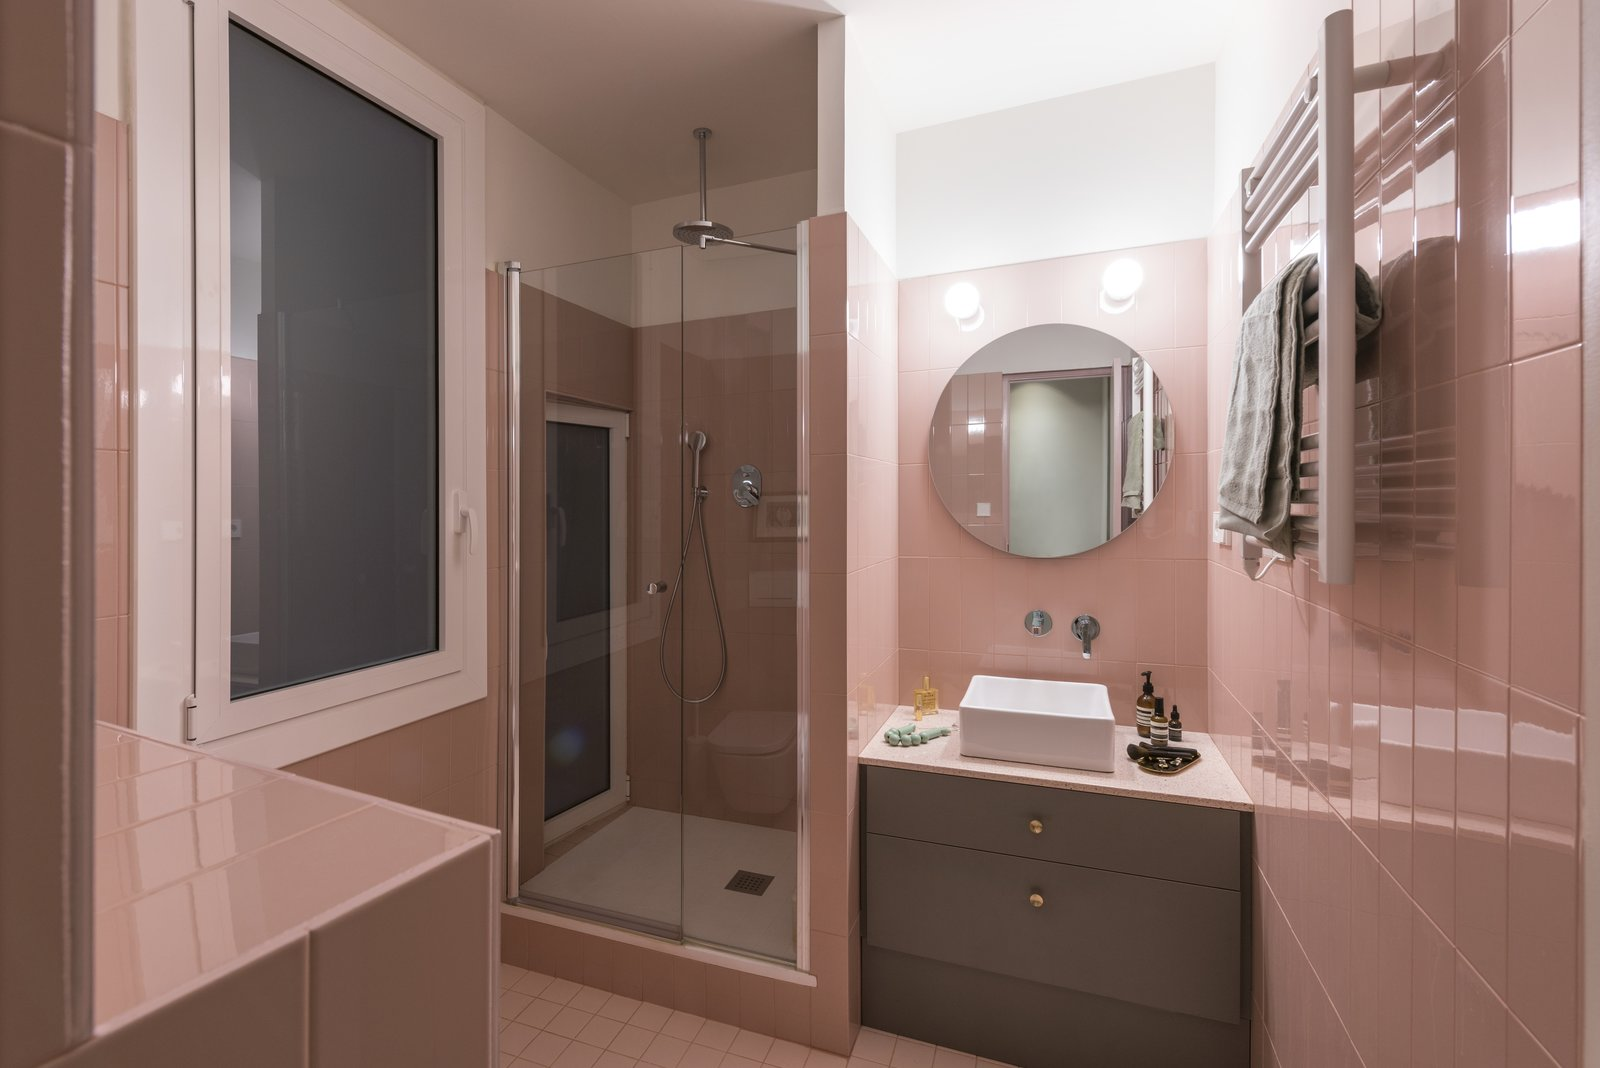 Bath, Wall, Porcelain Tile, Enclosed, Porcelain Tile, Vessel, Tile, and Corner The guest bathroom picks up on the pink lacquered them that runs throughout the apartment.  Best Bath Enclosed Wall Tile Photos from Before & After: An Ancient Barcelona Apartment Gets a Colorful, Chic Makeover